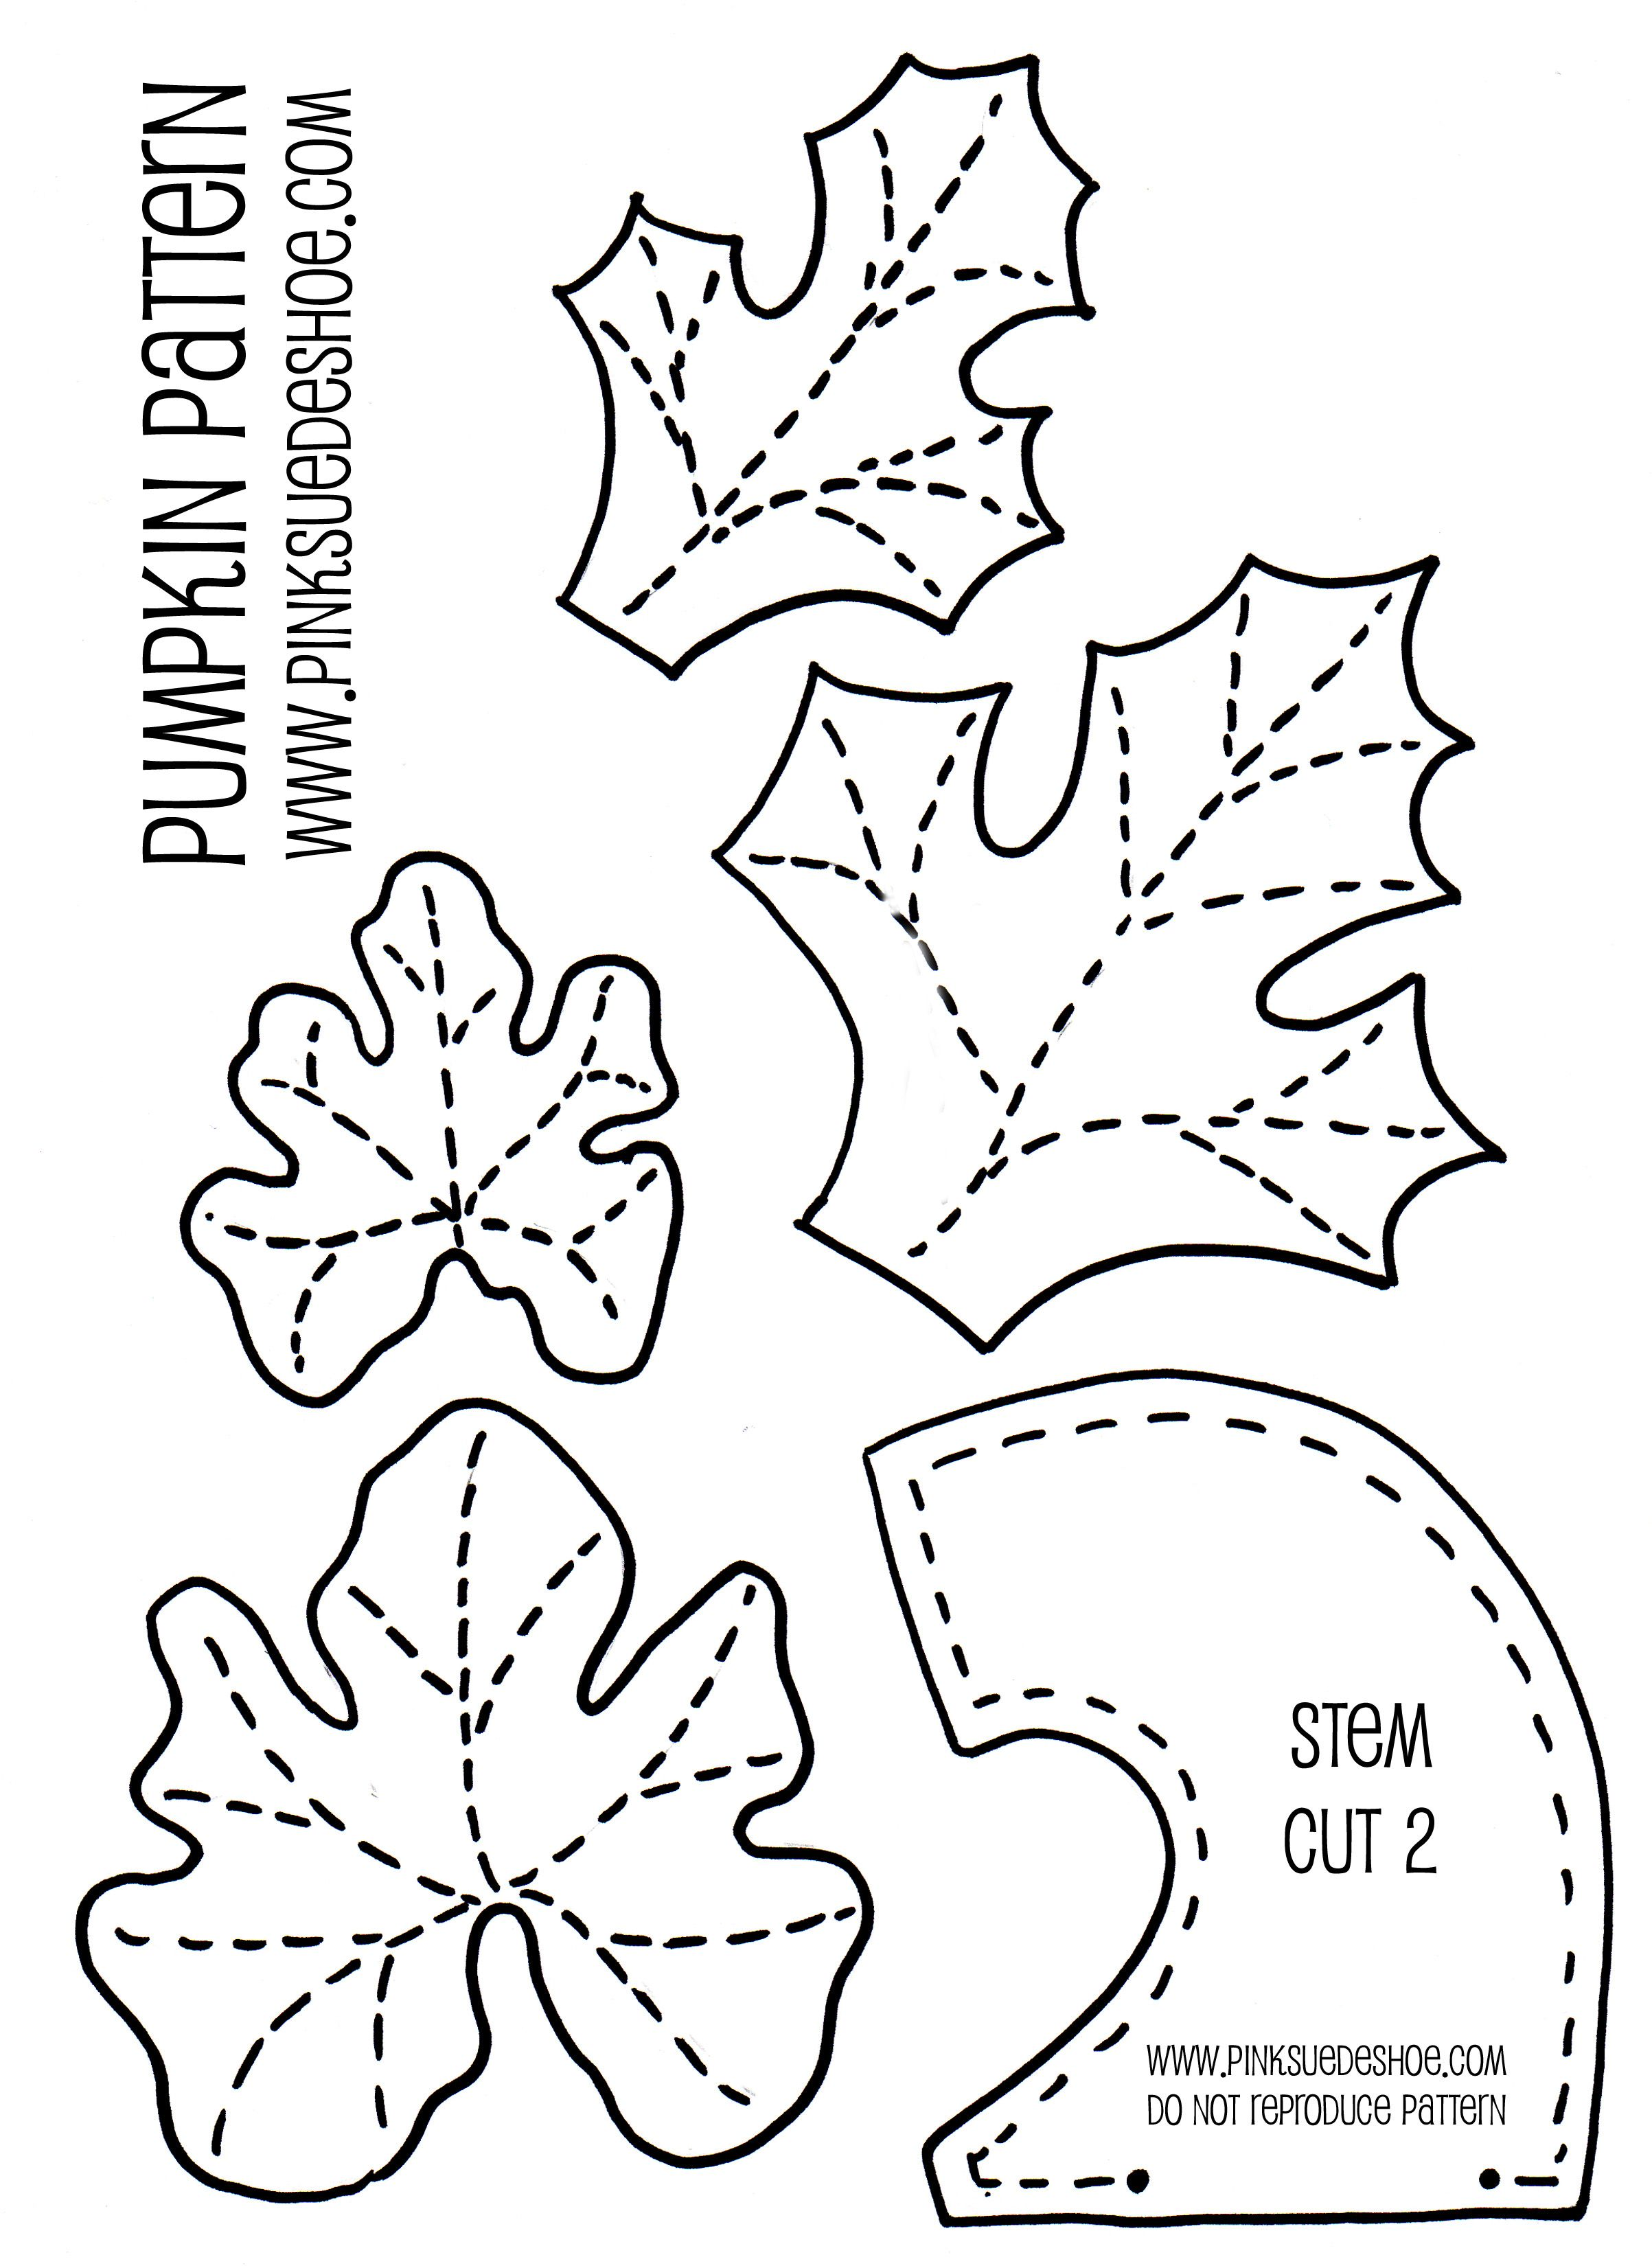 leaves-and-stems.jpg OOooo to go with the pumpkin pattern I have ...